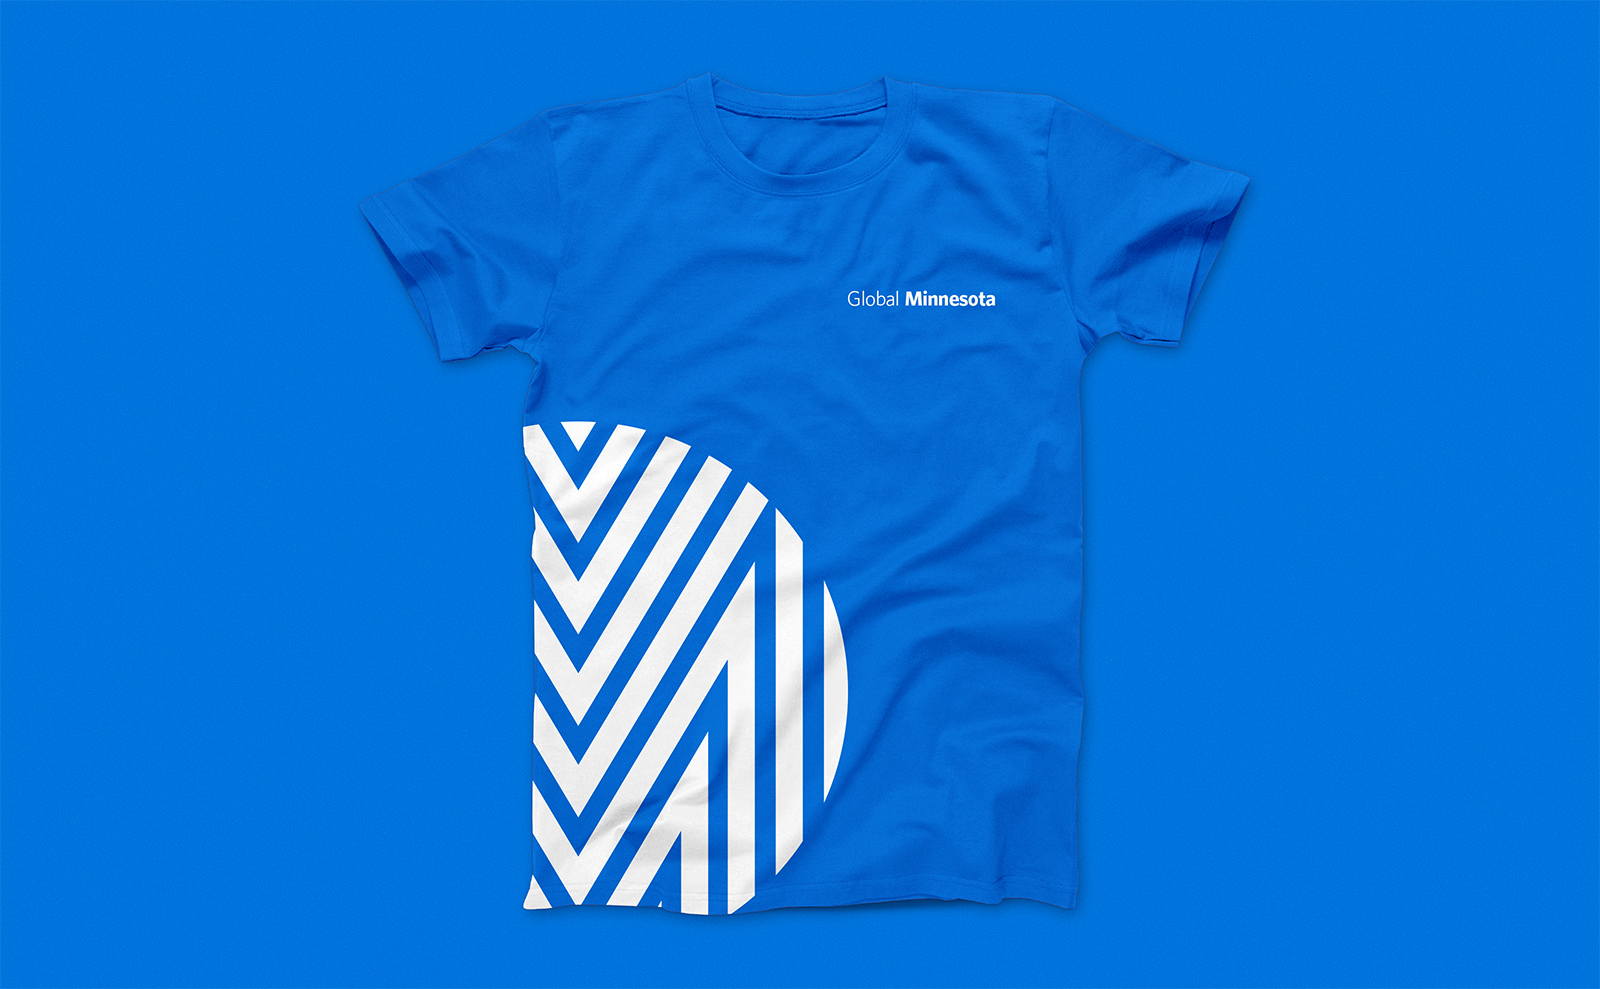 Global Minnesota logo on blue tshirt